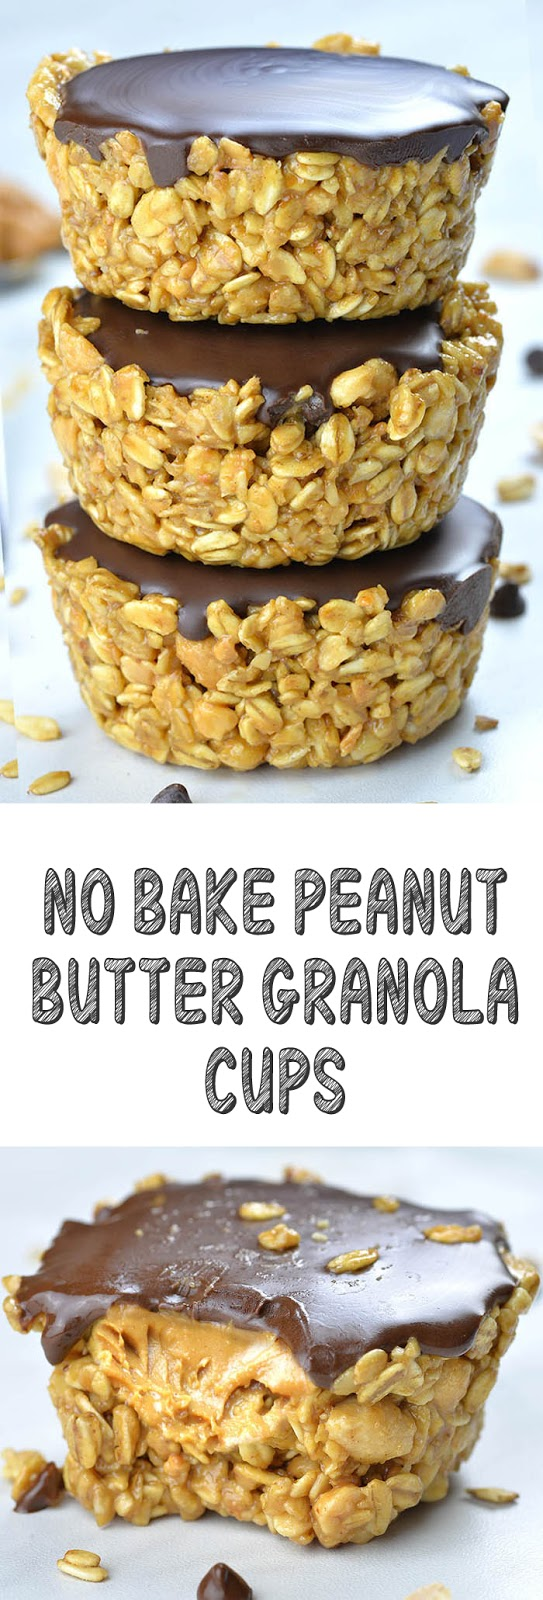 Recipe No Bake Peanut Butter Granola Cups #cookies #snack